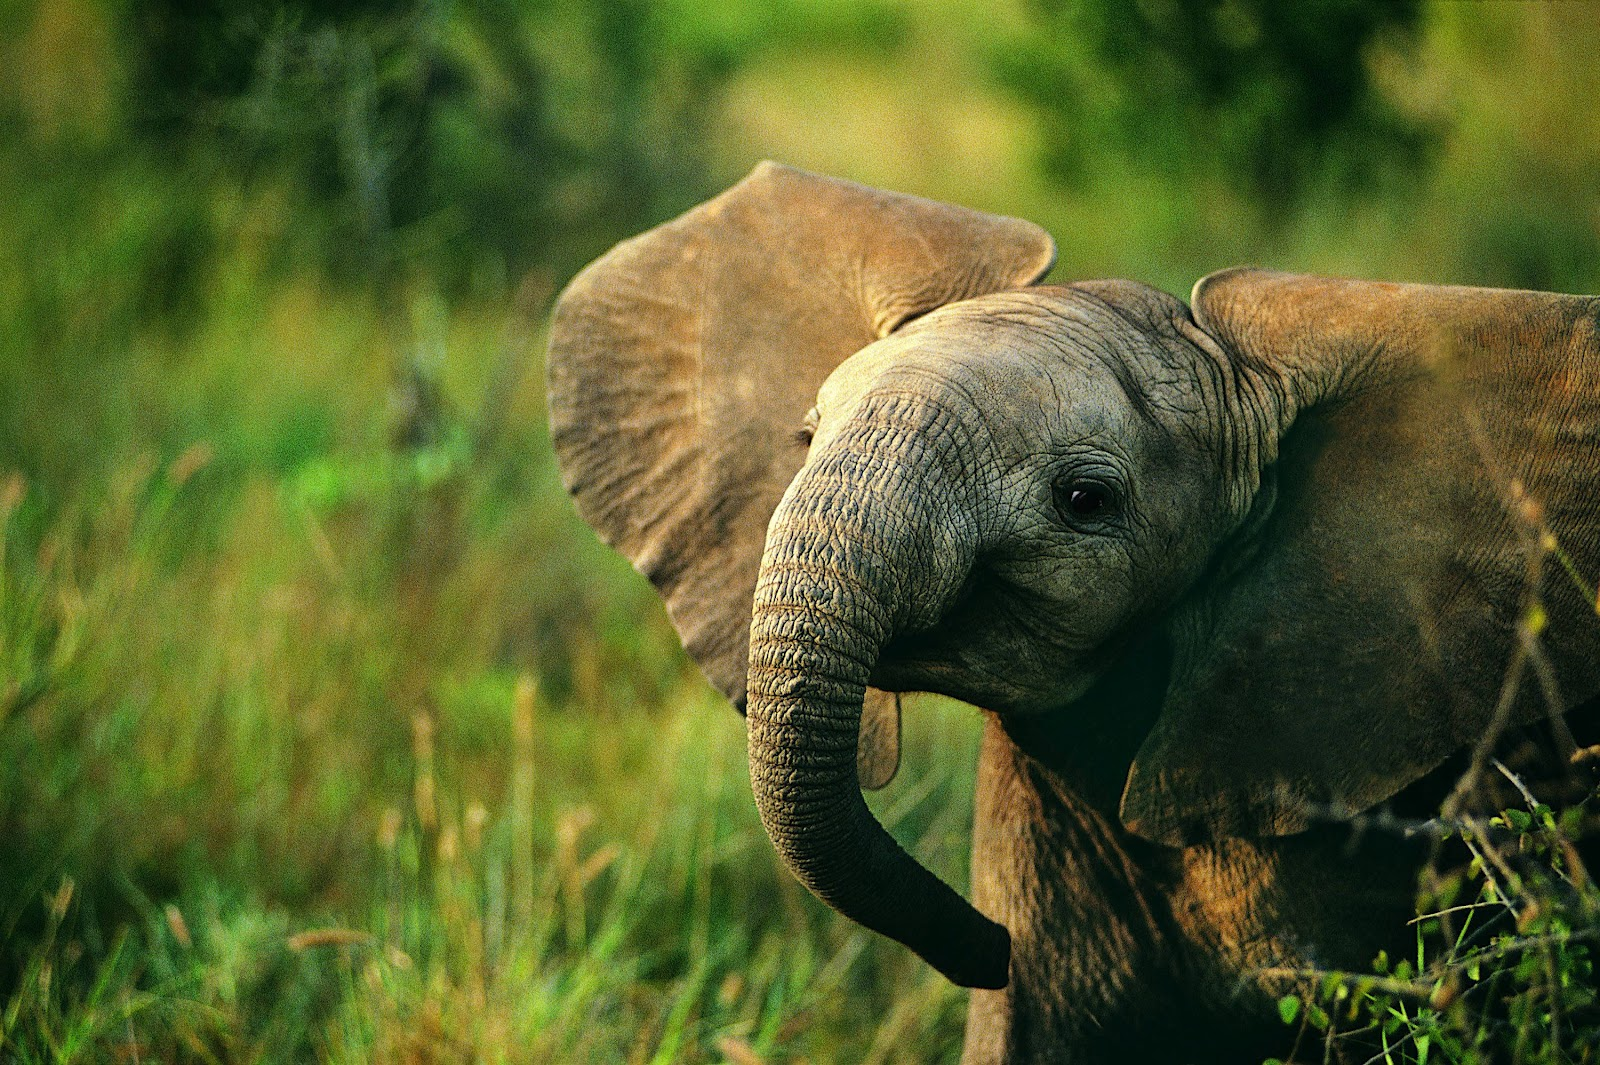 Wild Animals Hd Wallpaper Cute Animals Download: Beautiful Pictures OF Elephant In HD